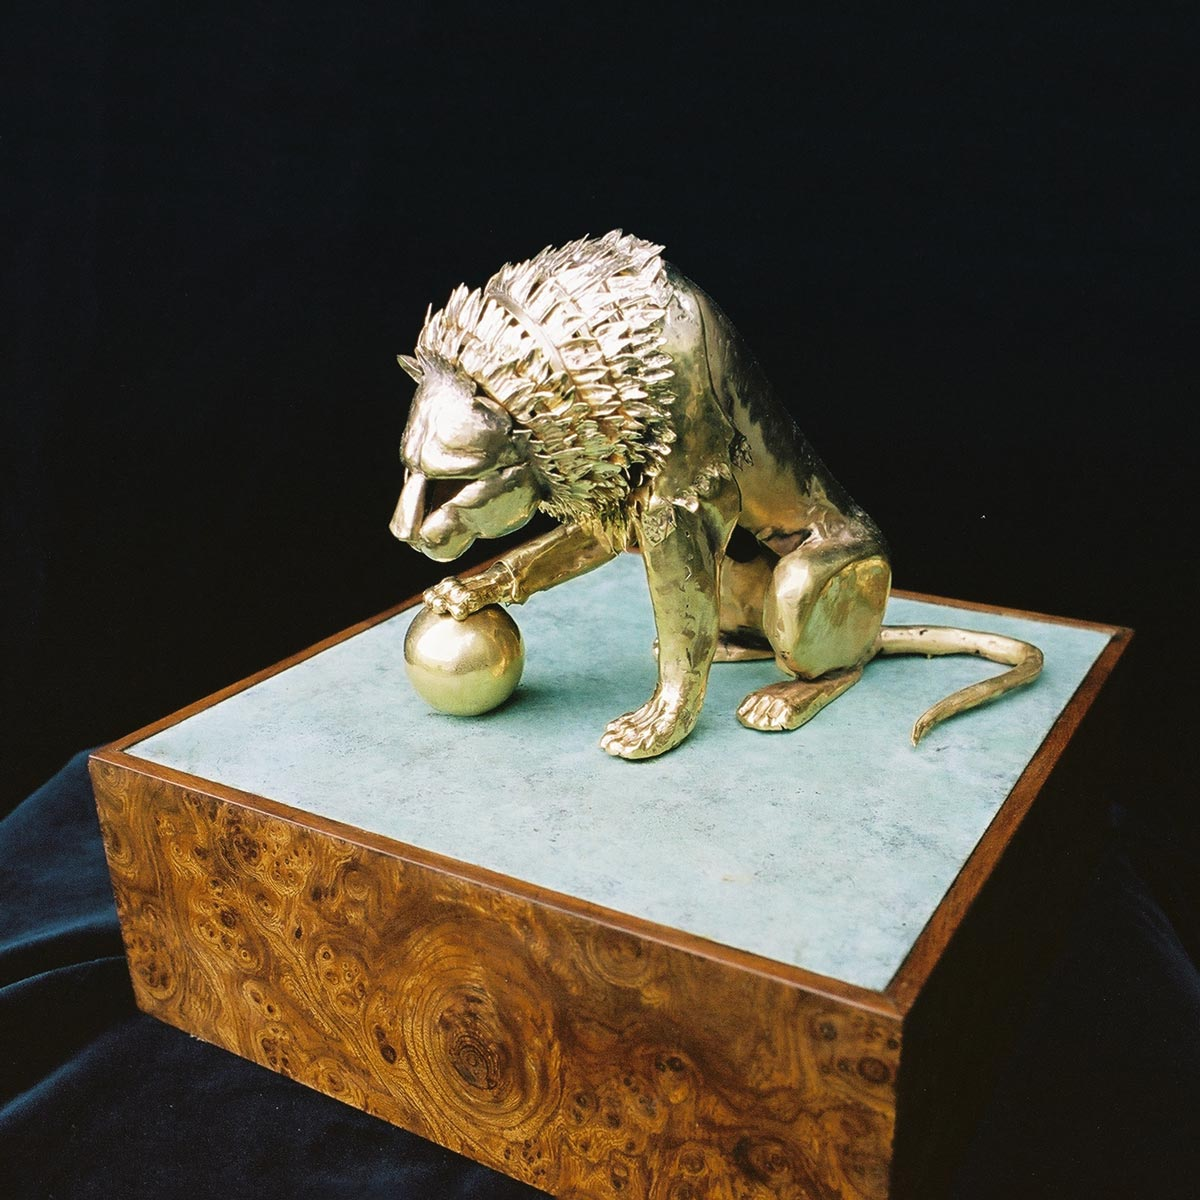 jacques-monestier-carre-2002-lion-2